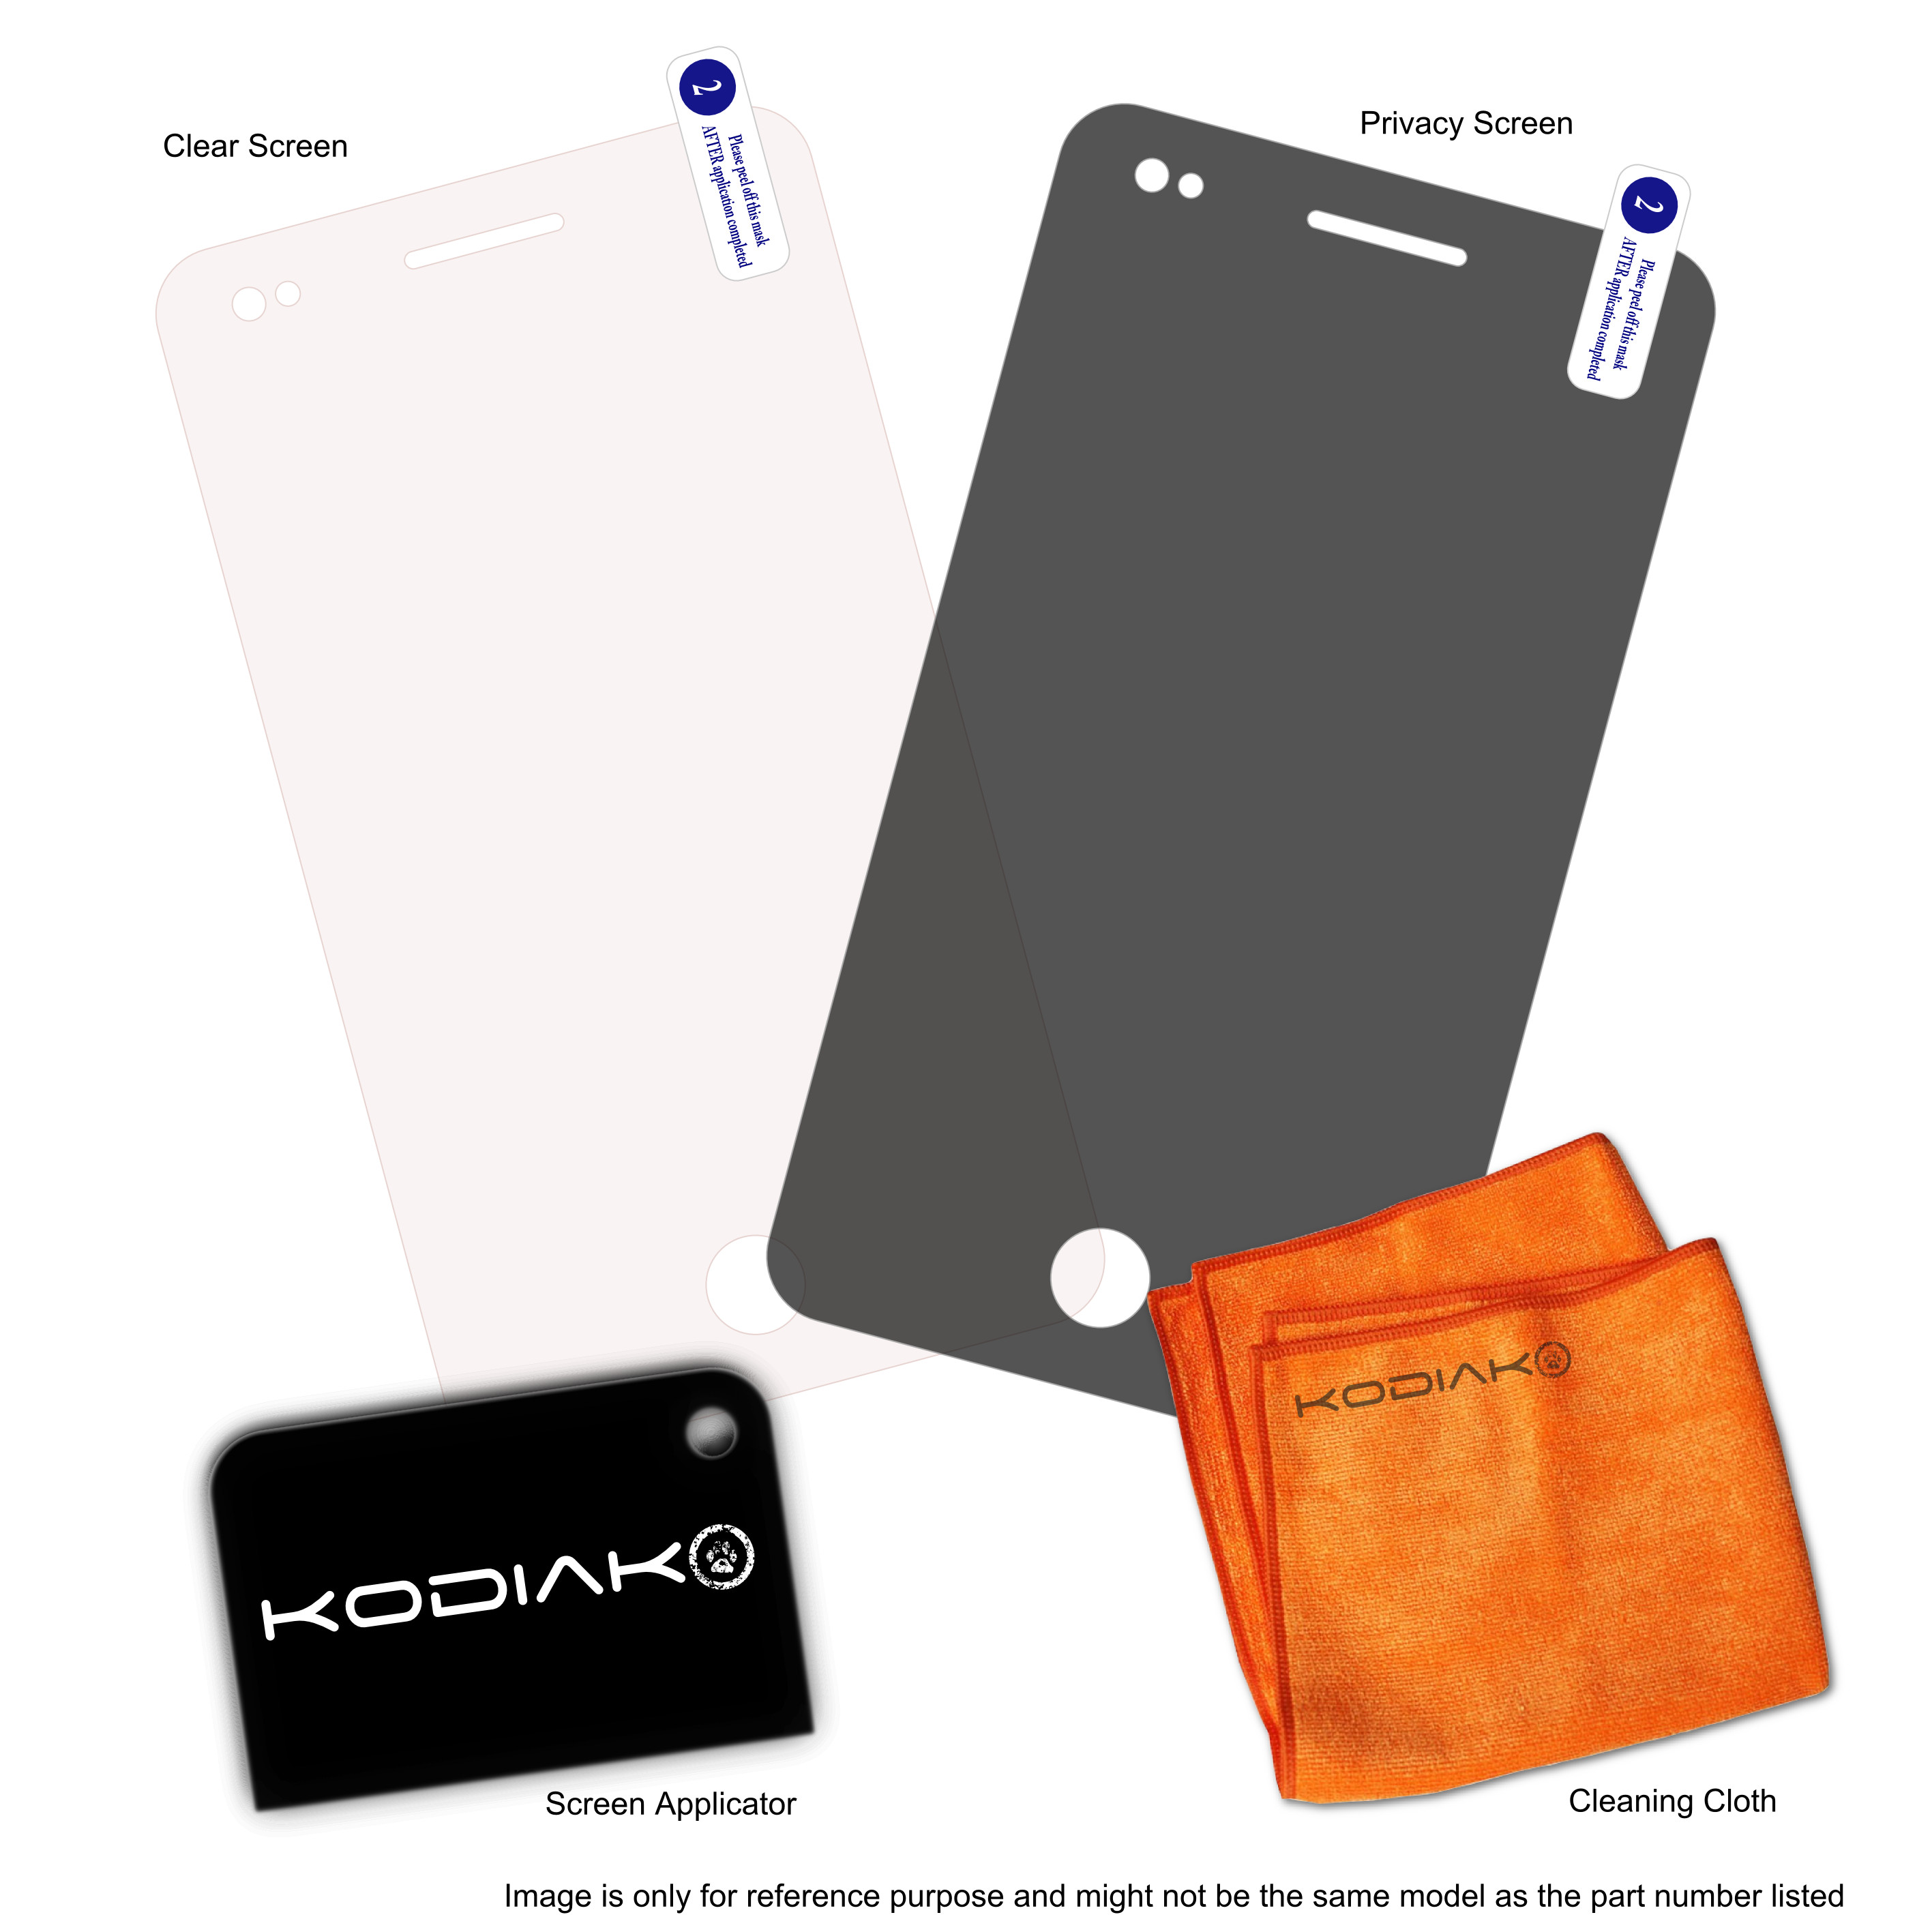 original-kodiak-screen-protector-sony-xperia-z-ultra-iprotect-2-package-clear-privacy